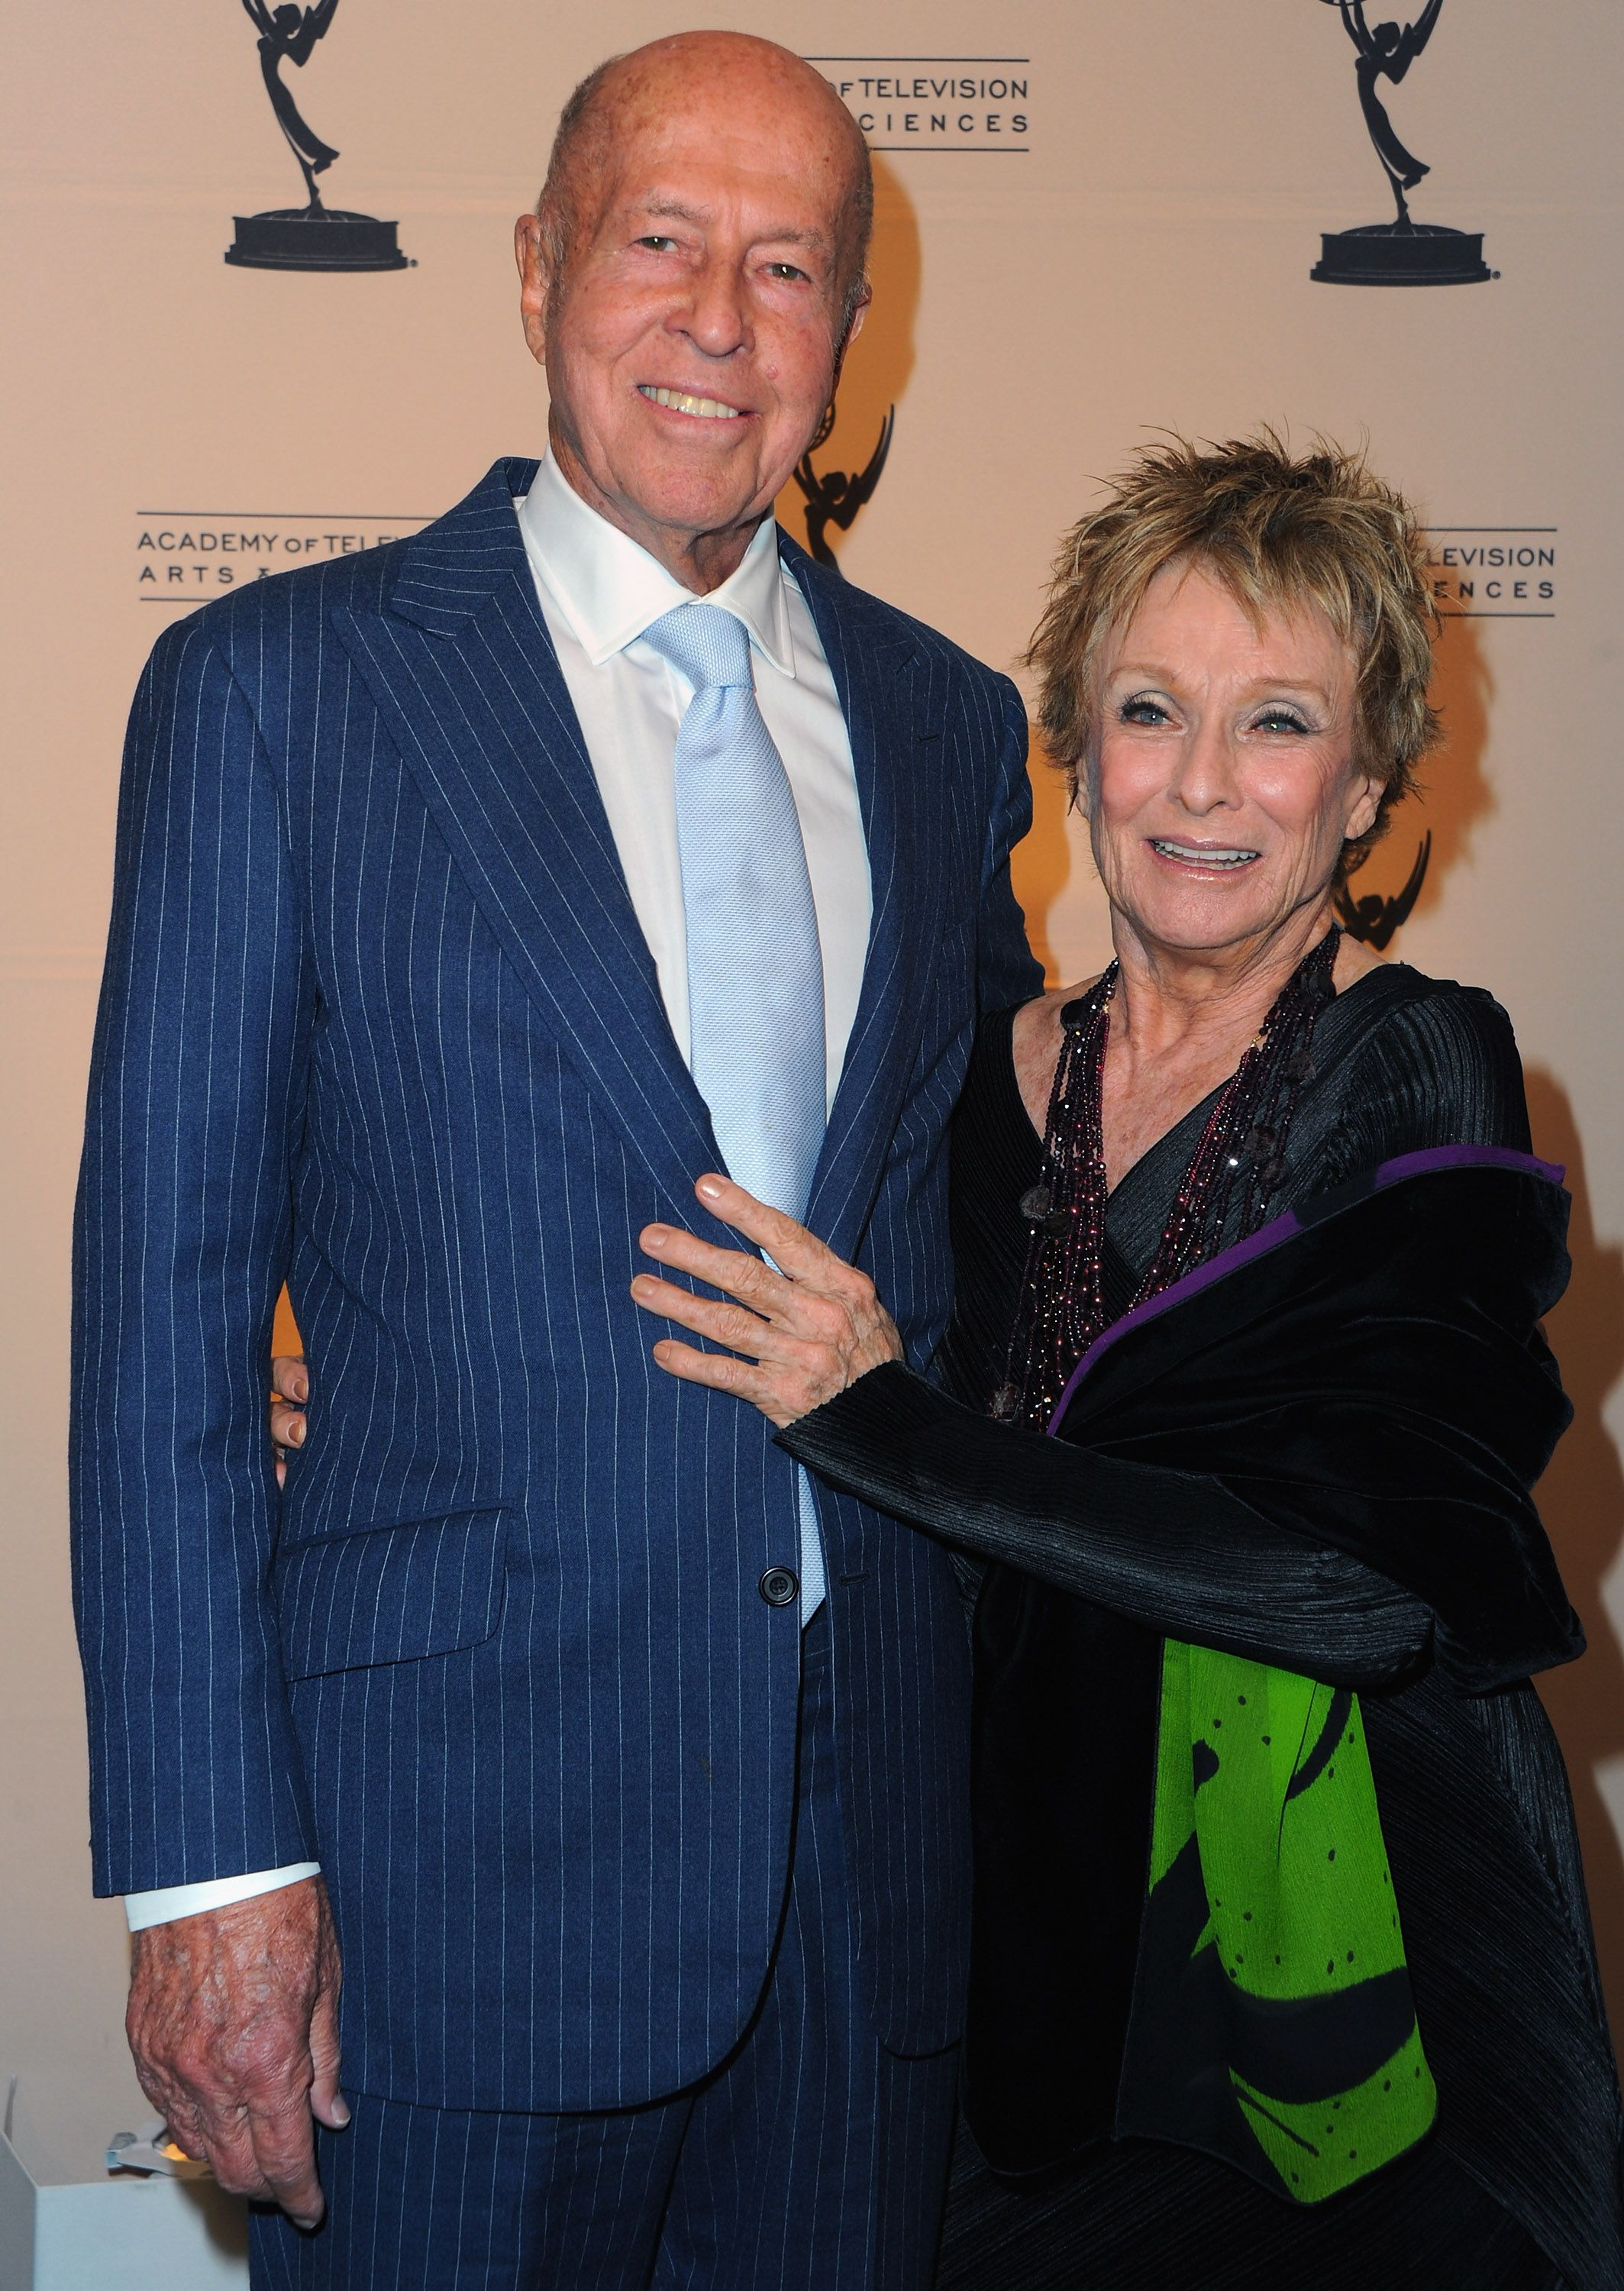 George Englund and Cloris Leachman at the Academy of Television Arts & Sciences' Hall of Fame Committee's 20th Annual Induction Gala on January 20, 2011 | Photo: Alberto E. Rodriguez/Getty Images